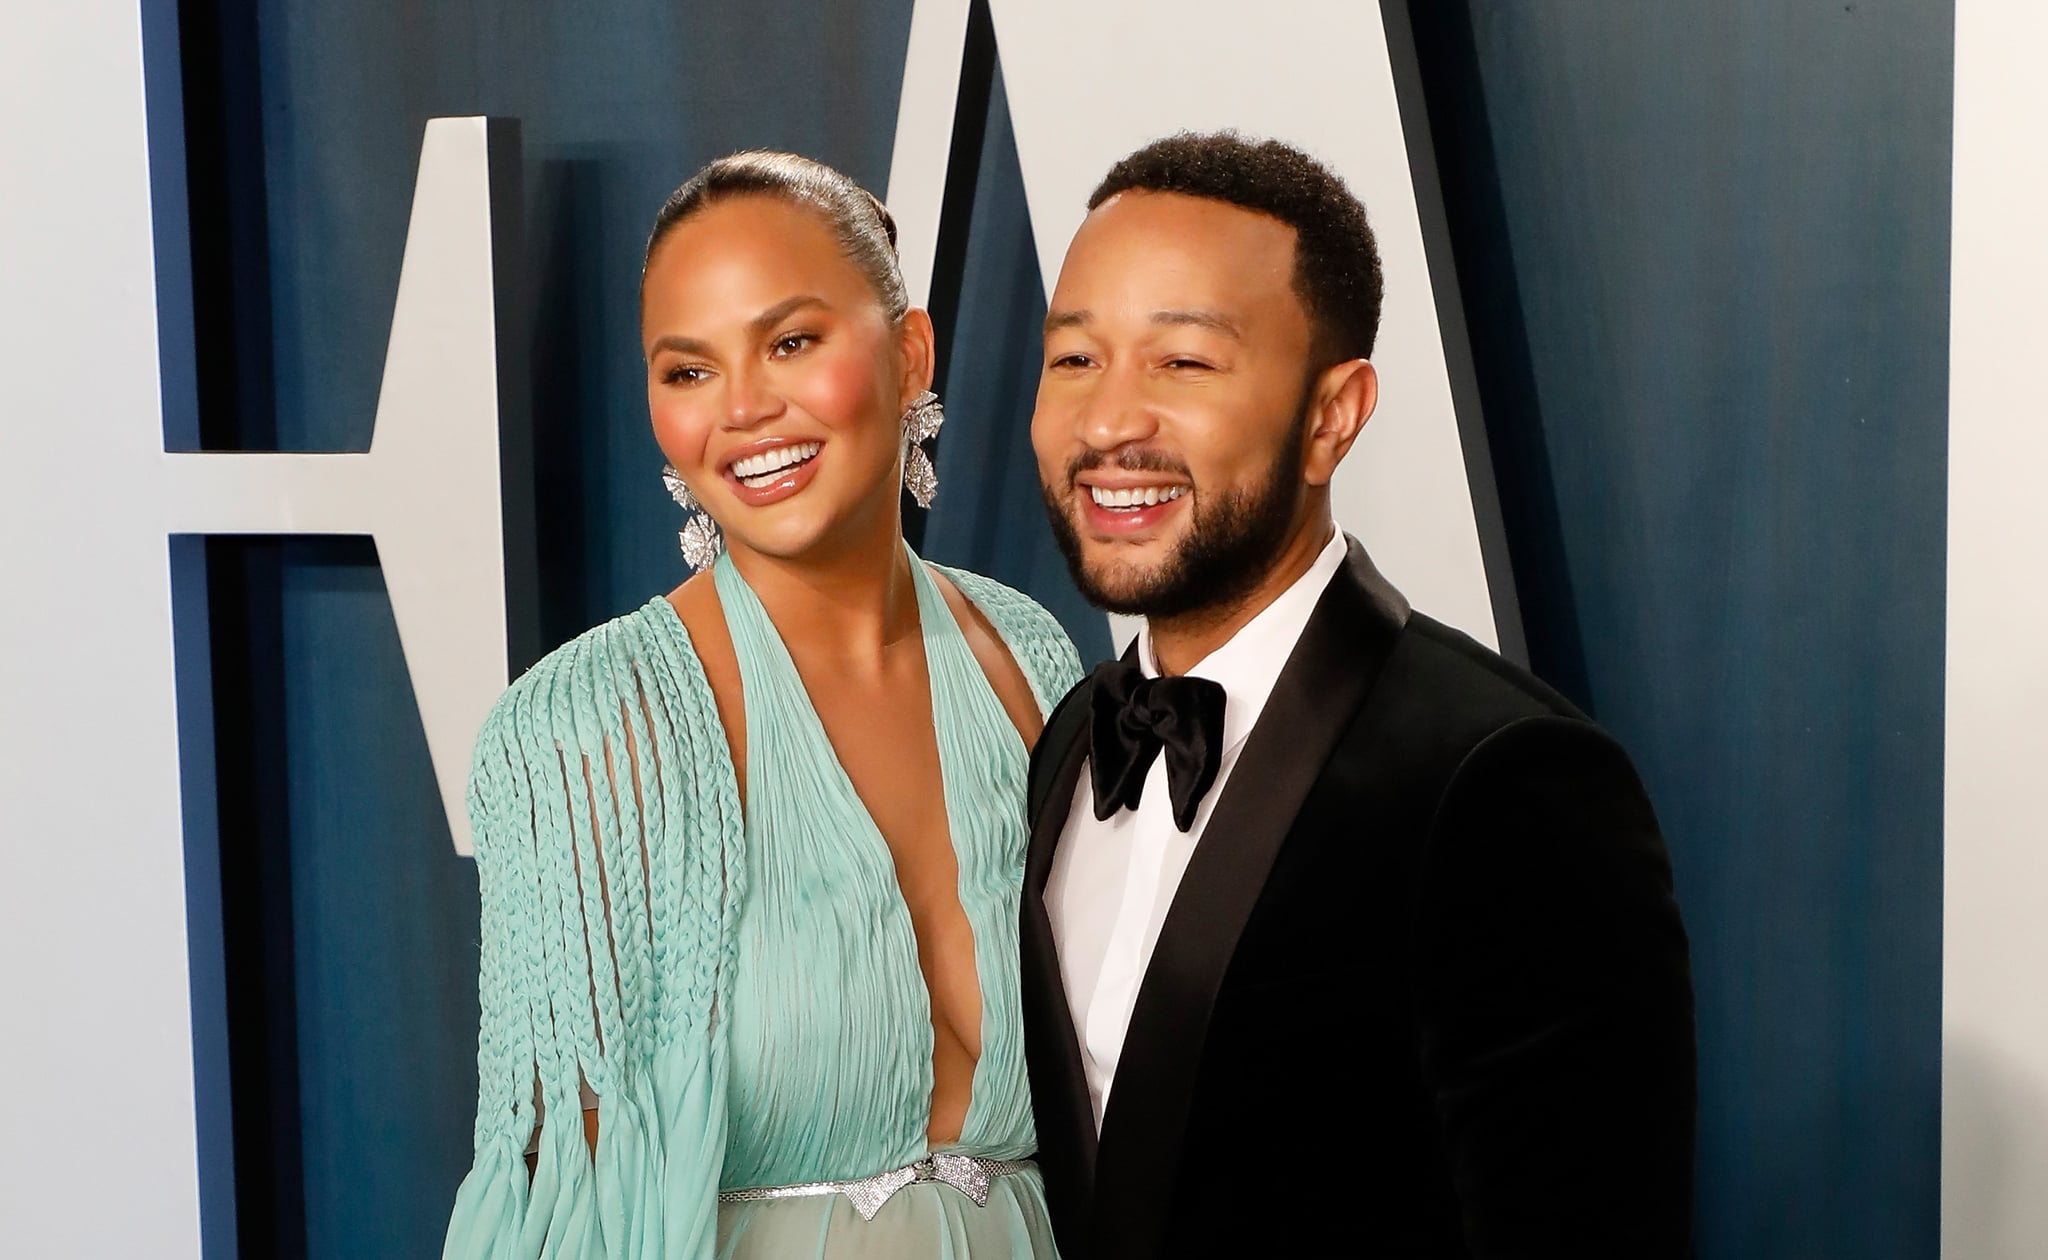 BEVERLY HILLS, CALIFORNIA - FEBRUARY 09:  (L-R) Chrissy Teigen and John Legend attend the 2020 Vanity Fair Oscar Party at Wallis Annenberg Centre for the Performing Arts on February 09, 2020 in Beverly Hills, California. (Photo by Taylor Hill/FilmMagic,)